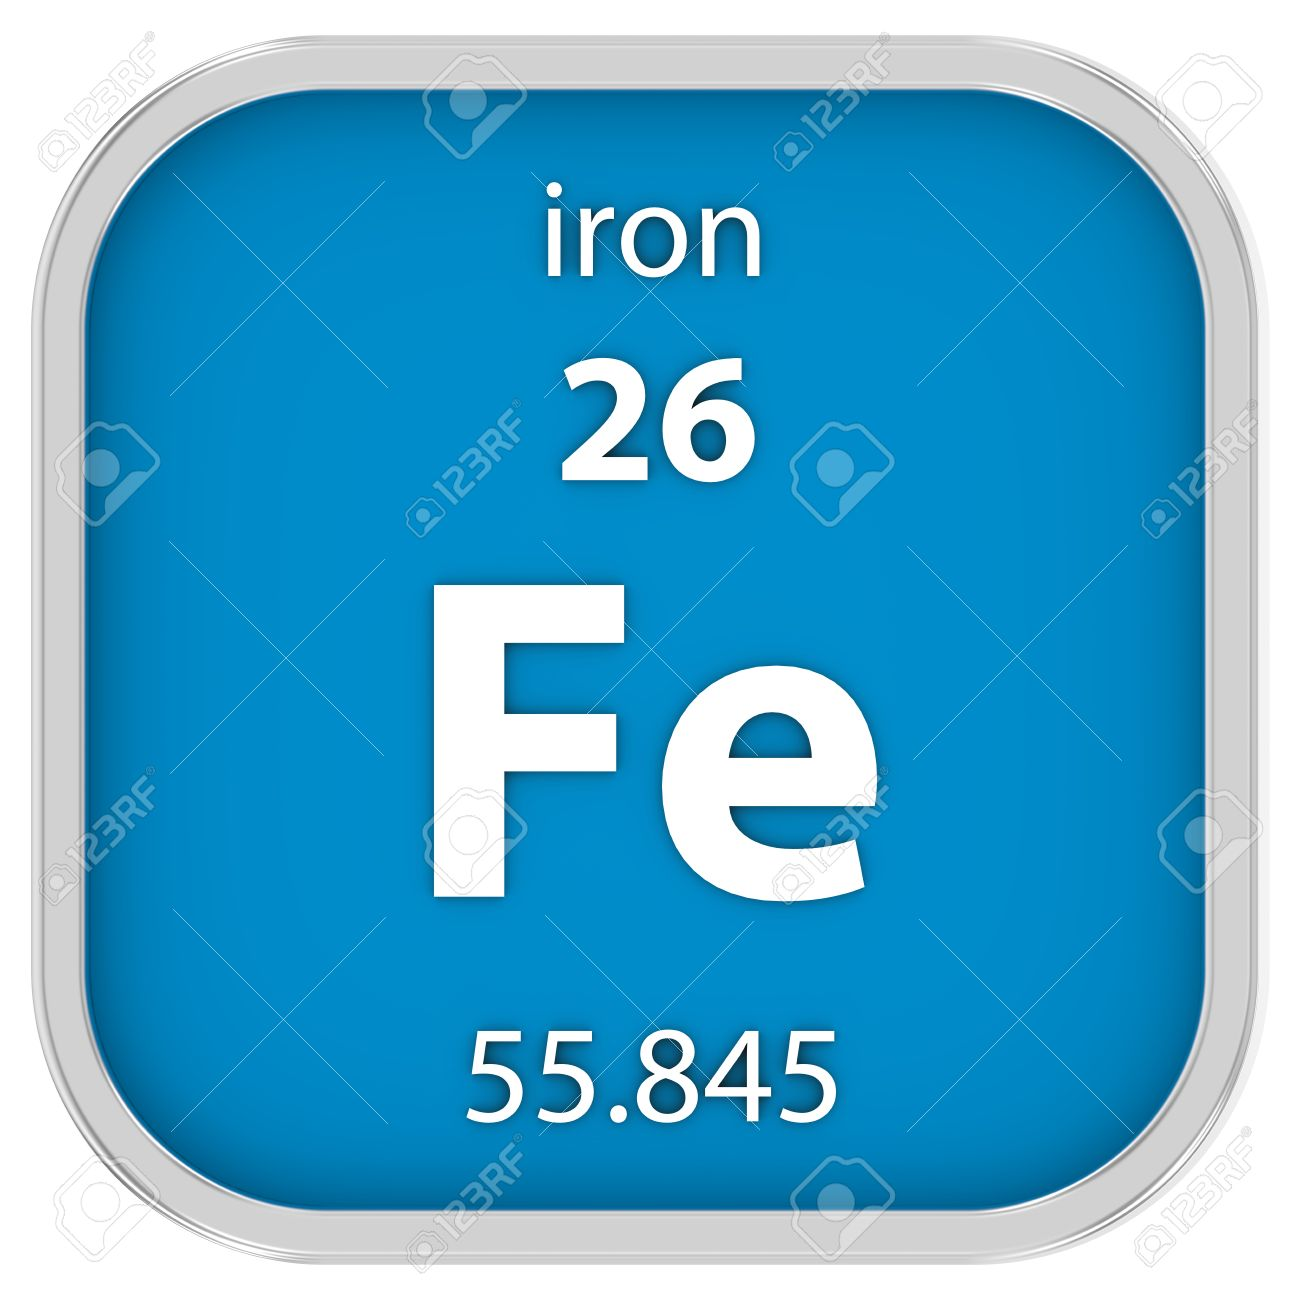 Whats iron on the periodic table images periodic table images iron on periodic table images periodic table images periodic table symbol for iron gallery periodic table gamestrikefo Choice Image